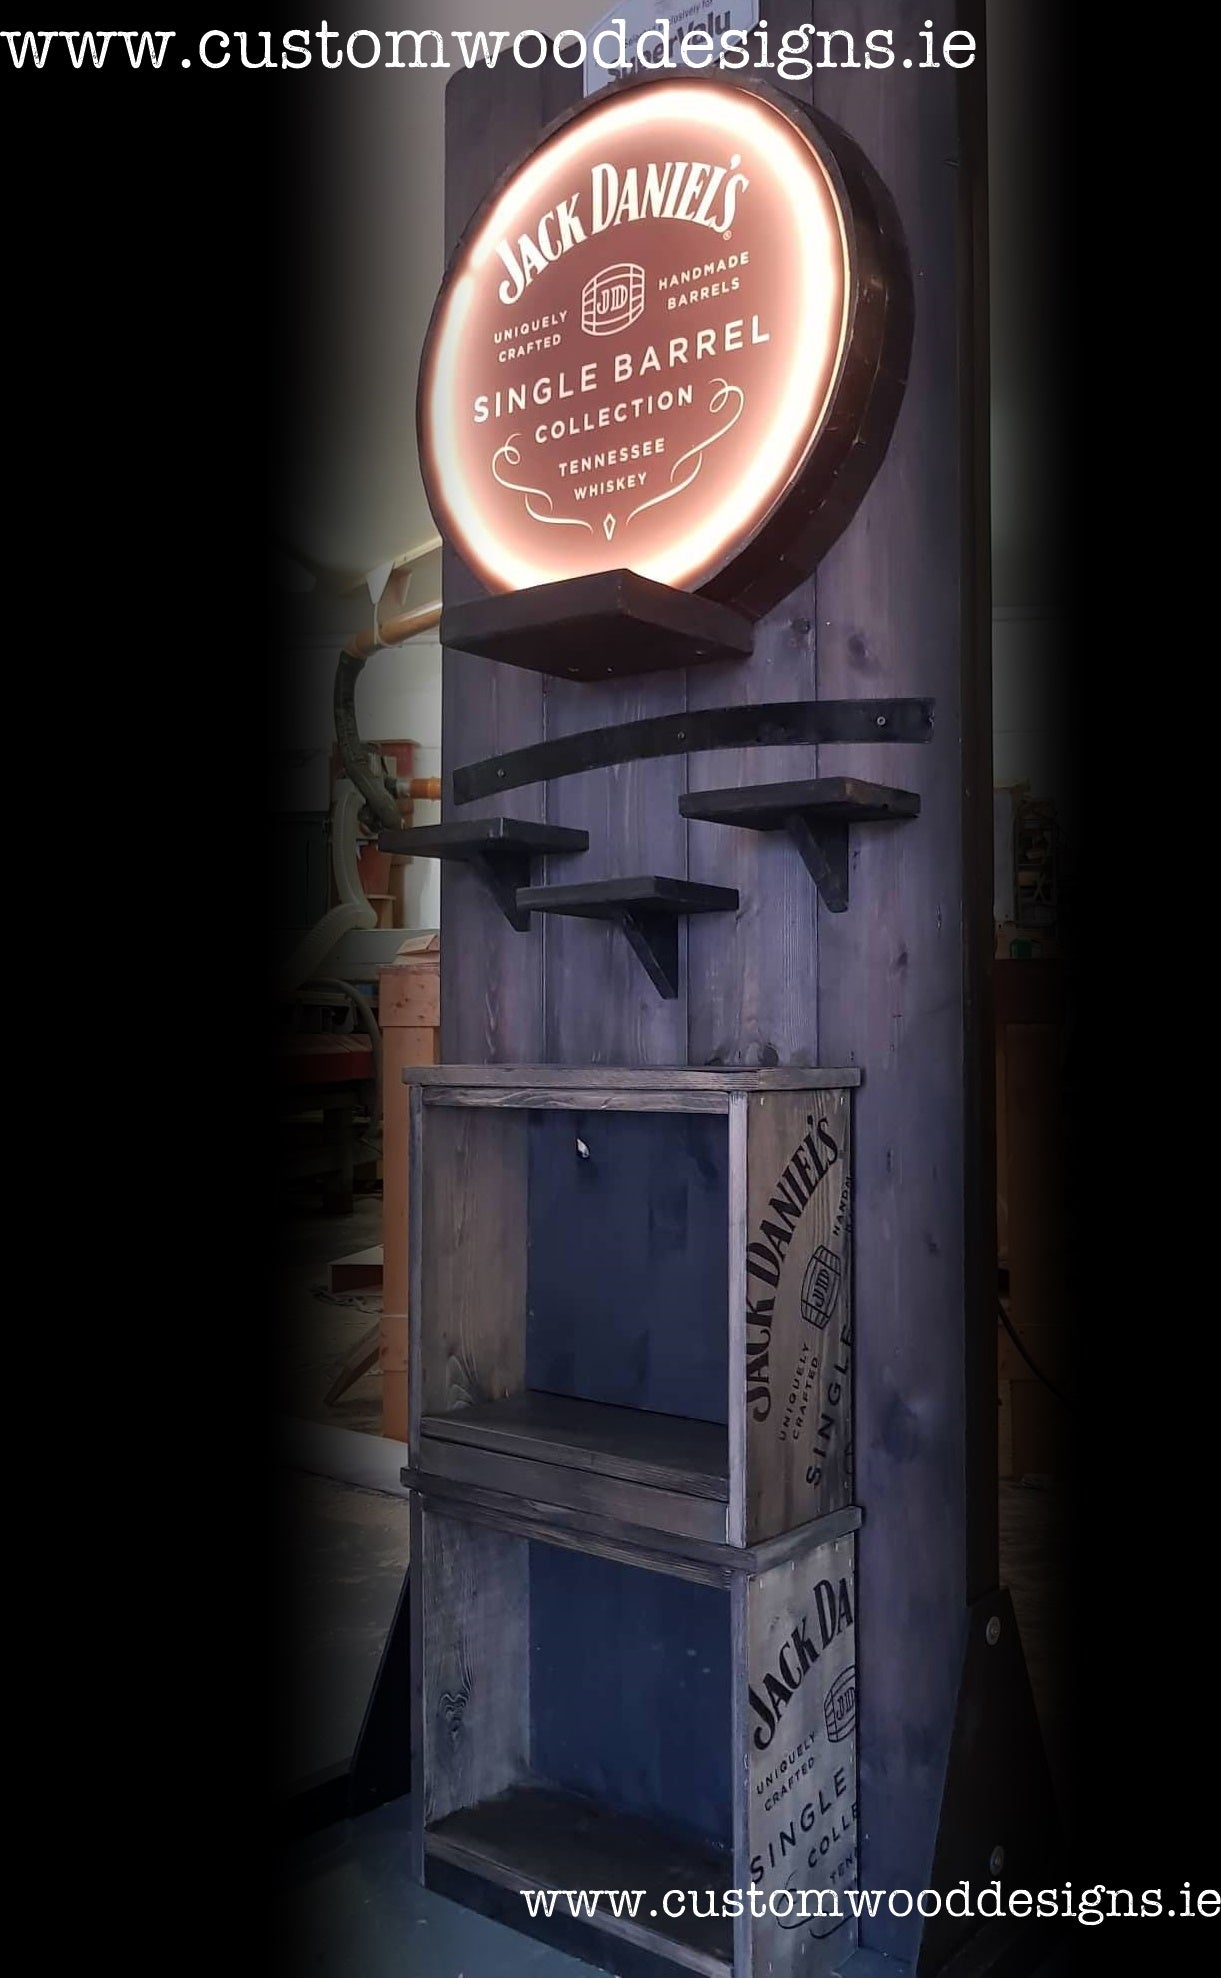 rustic with light jack daniels point of sale retail display point of sale free standing europenan manufacturer custom wood designs Ireland Irish designs manufacture